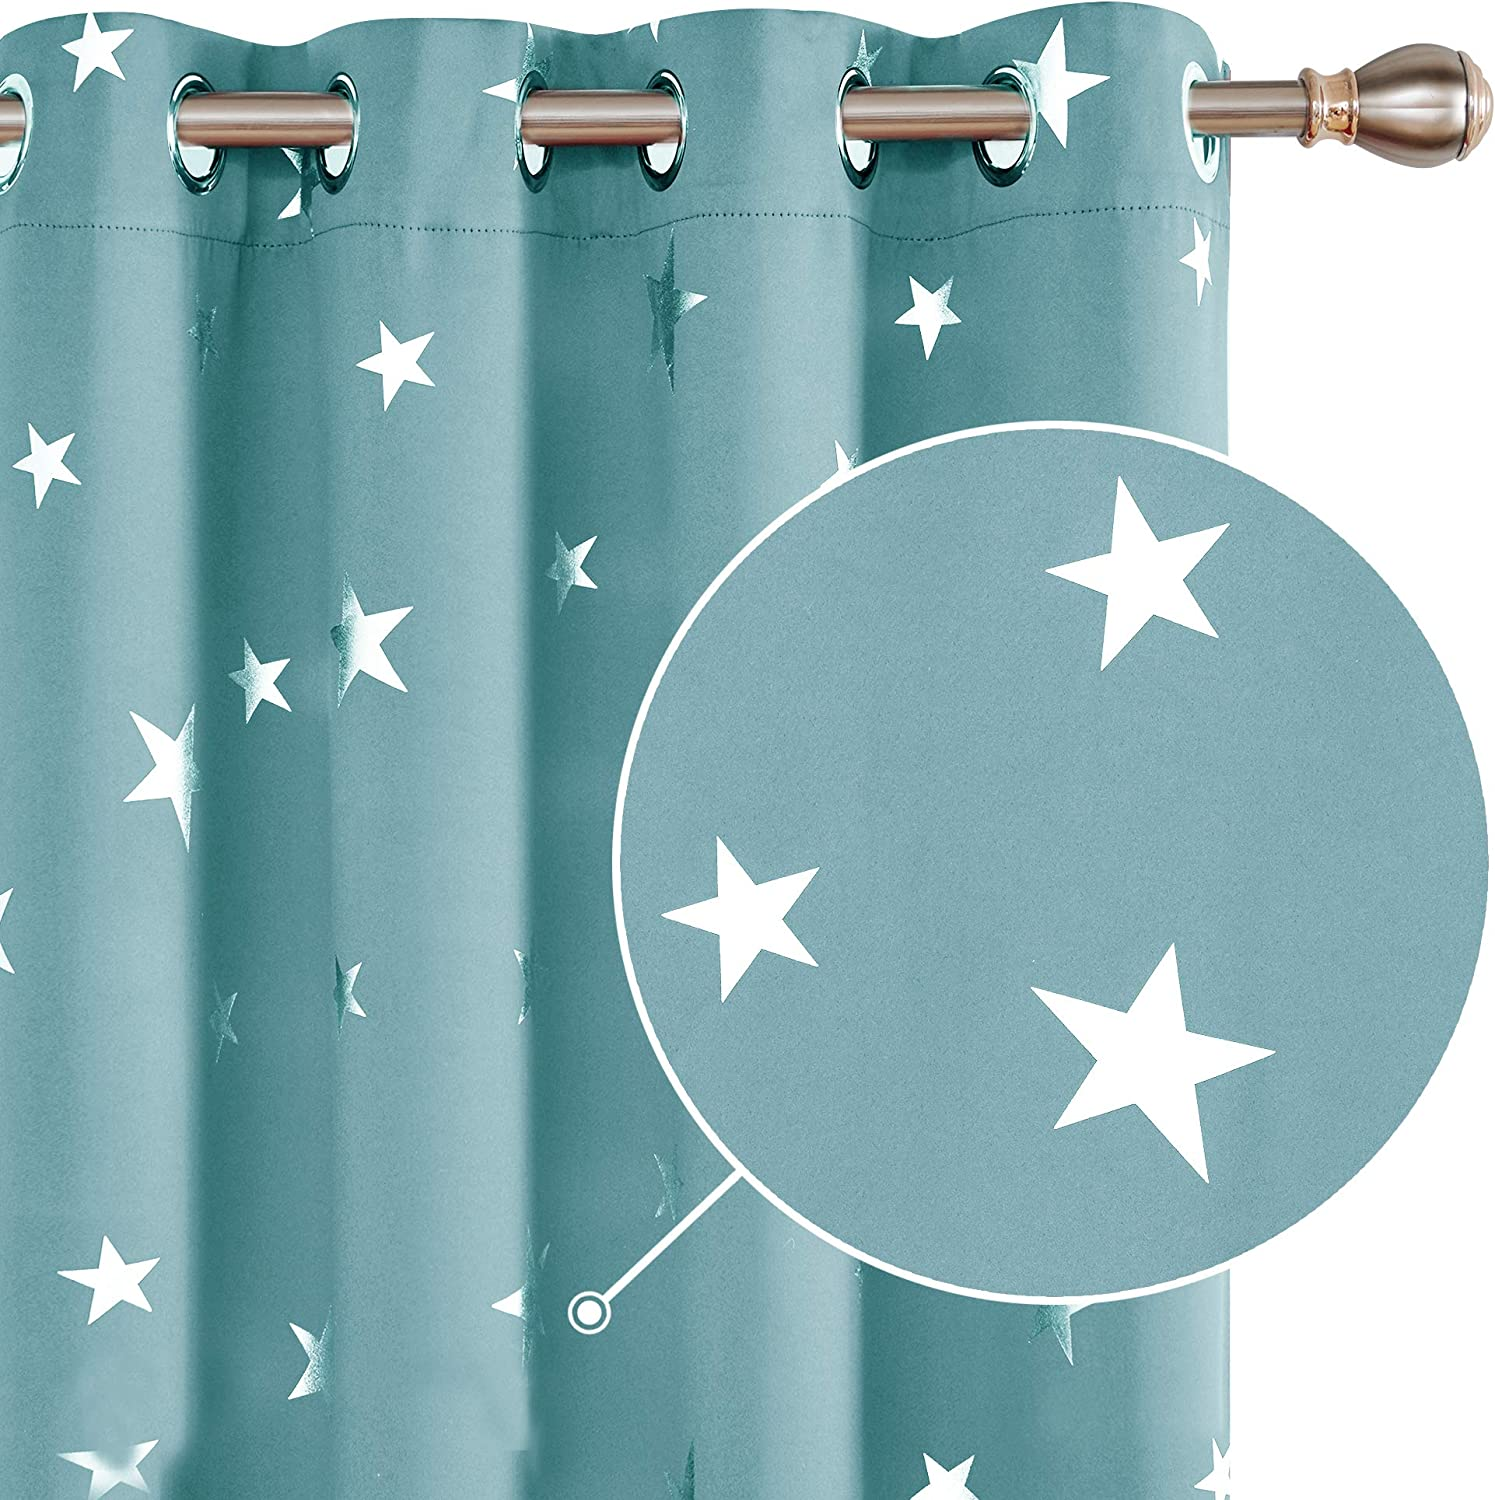 """Deconovo Super Soft Foil Star Printed Thermal Insulated Blackout Curtains Eyelet Soundproof Curtains for Bedroom Sky Blue W55xL70 Inches 2pcs 2x W55""""x L70"""" Sky Blue"""